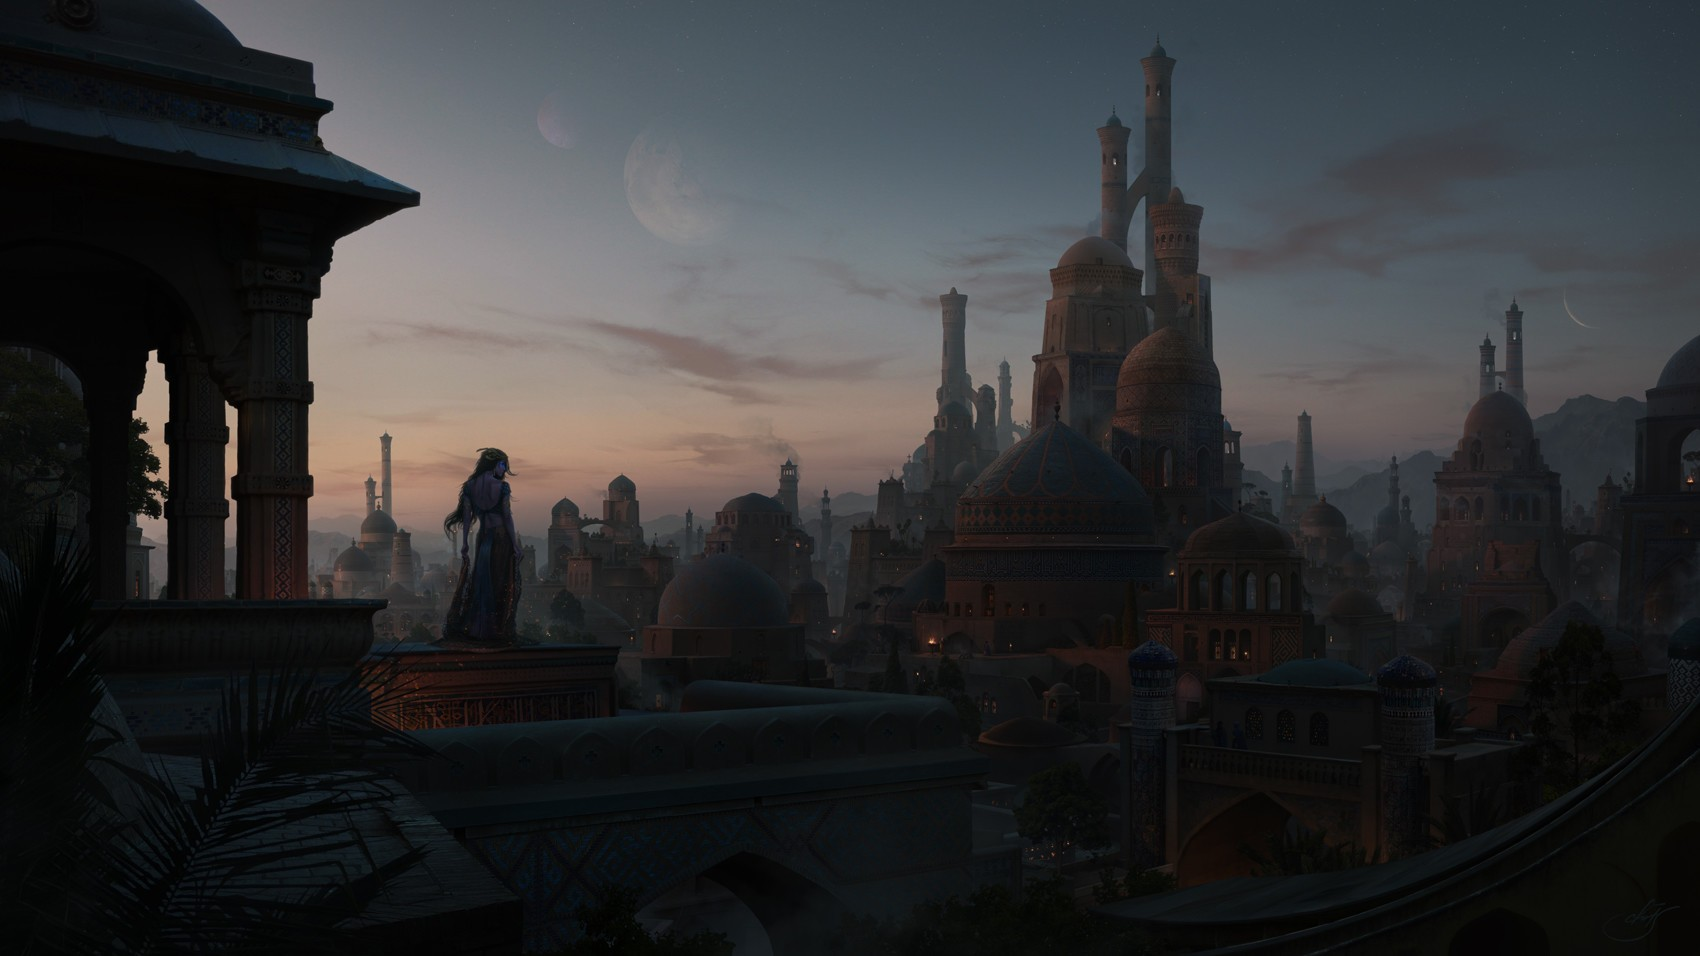 Fall Out 4 Hd Wallpapers Christian Dimitrov Artwork Cityscape Fantasy City